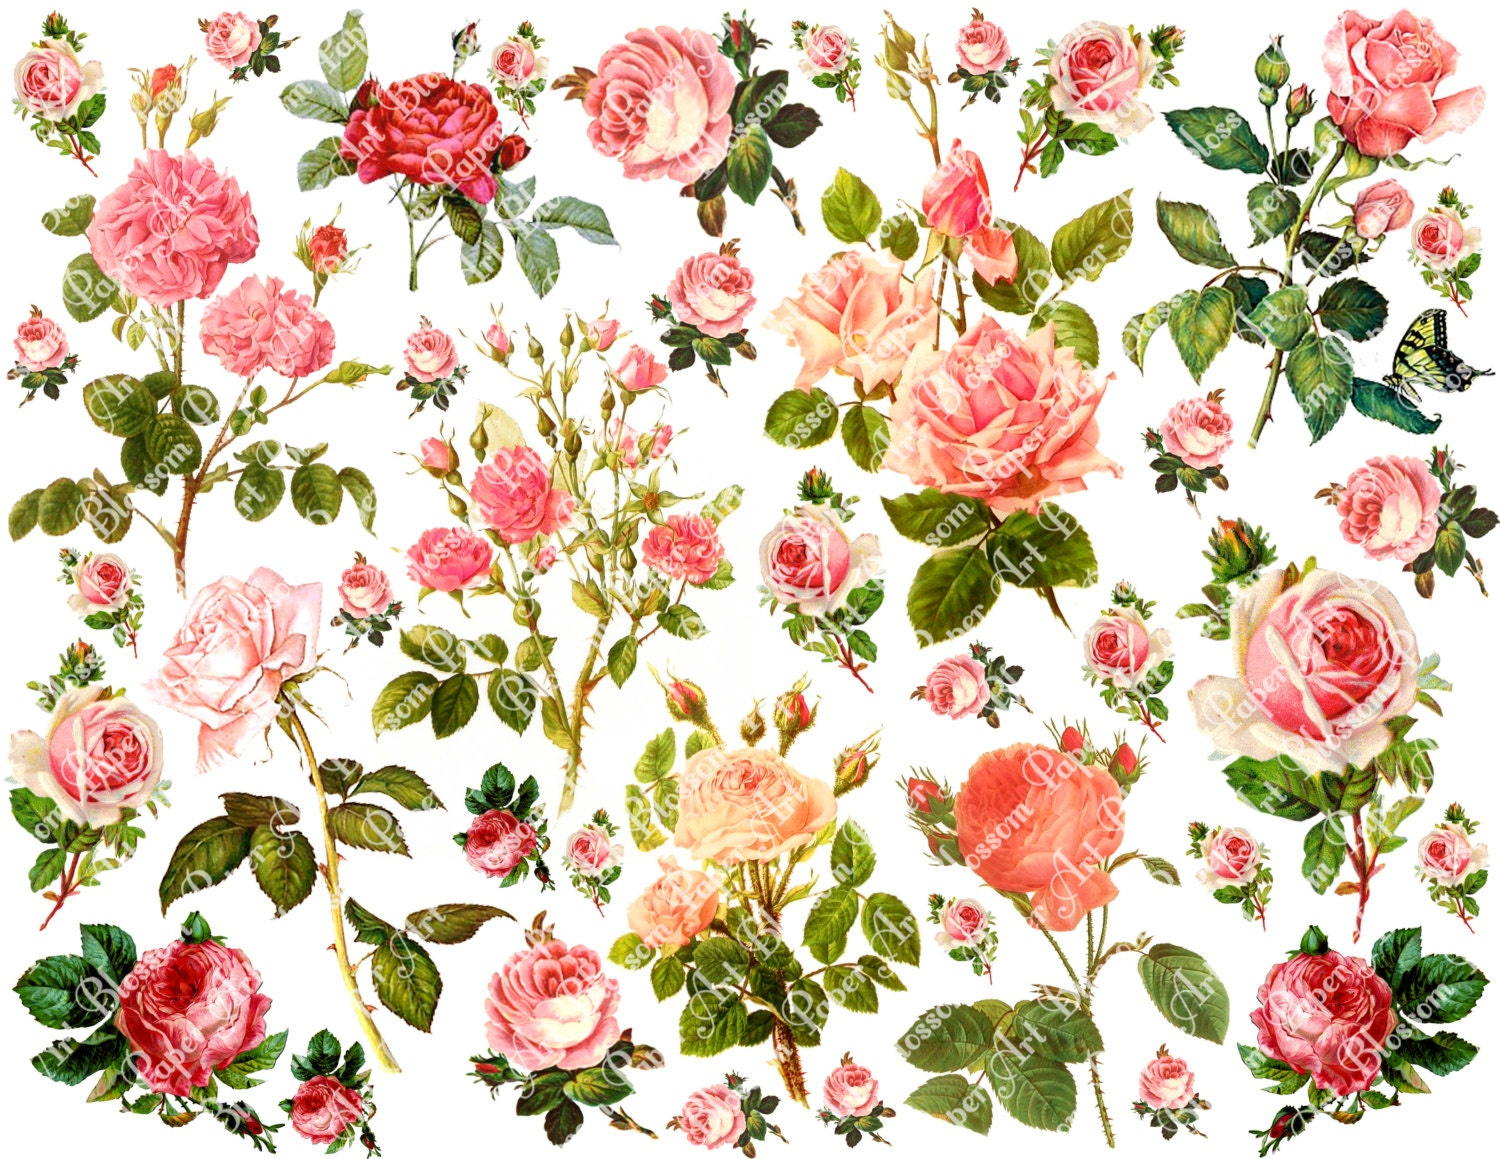 Scrapbook flowers image collections handicraft ideas home decorating pink roses collage sheet digital flowers scrapbooking mightylinksfo